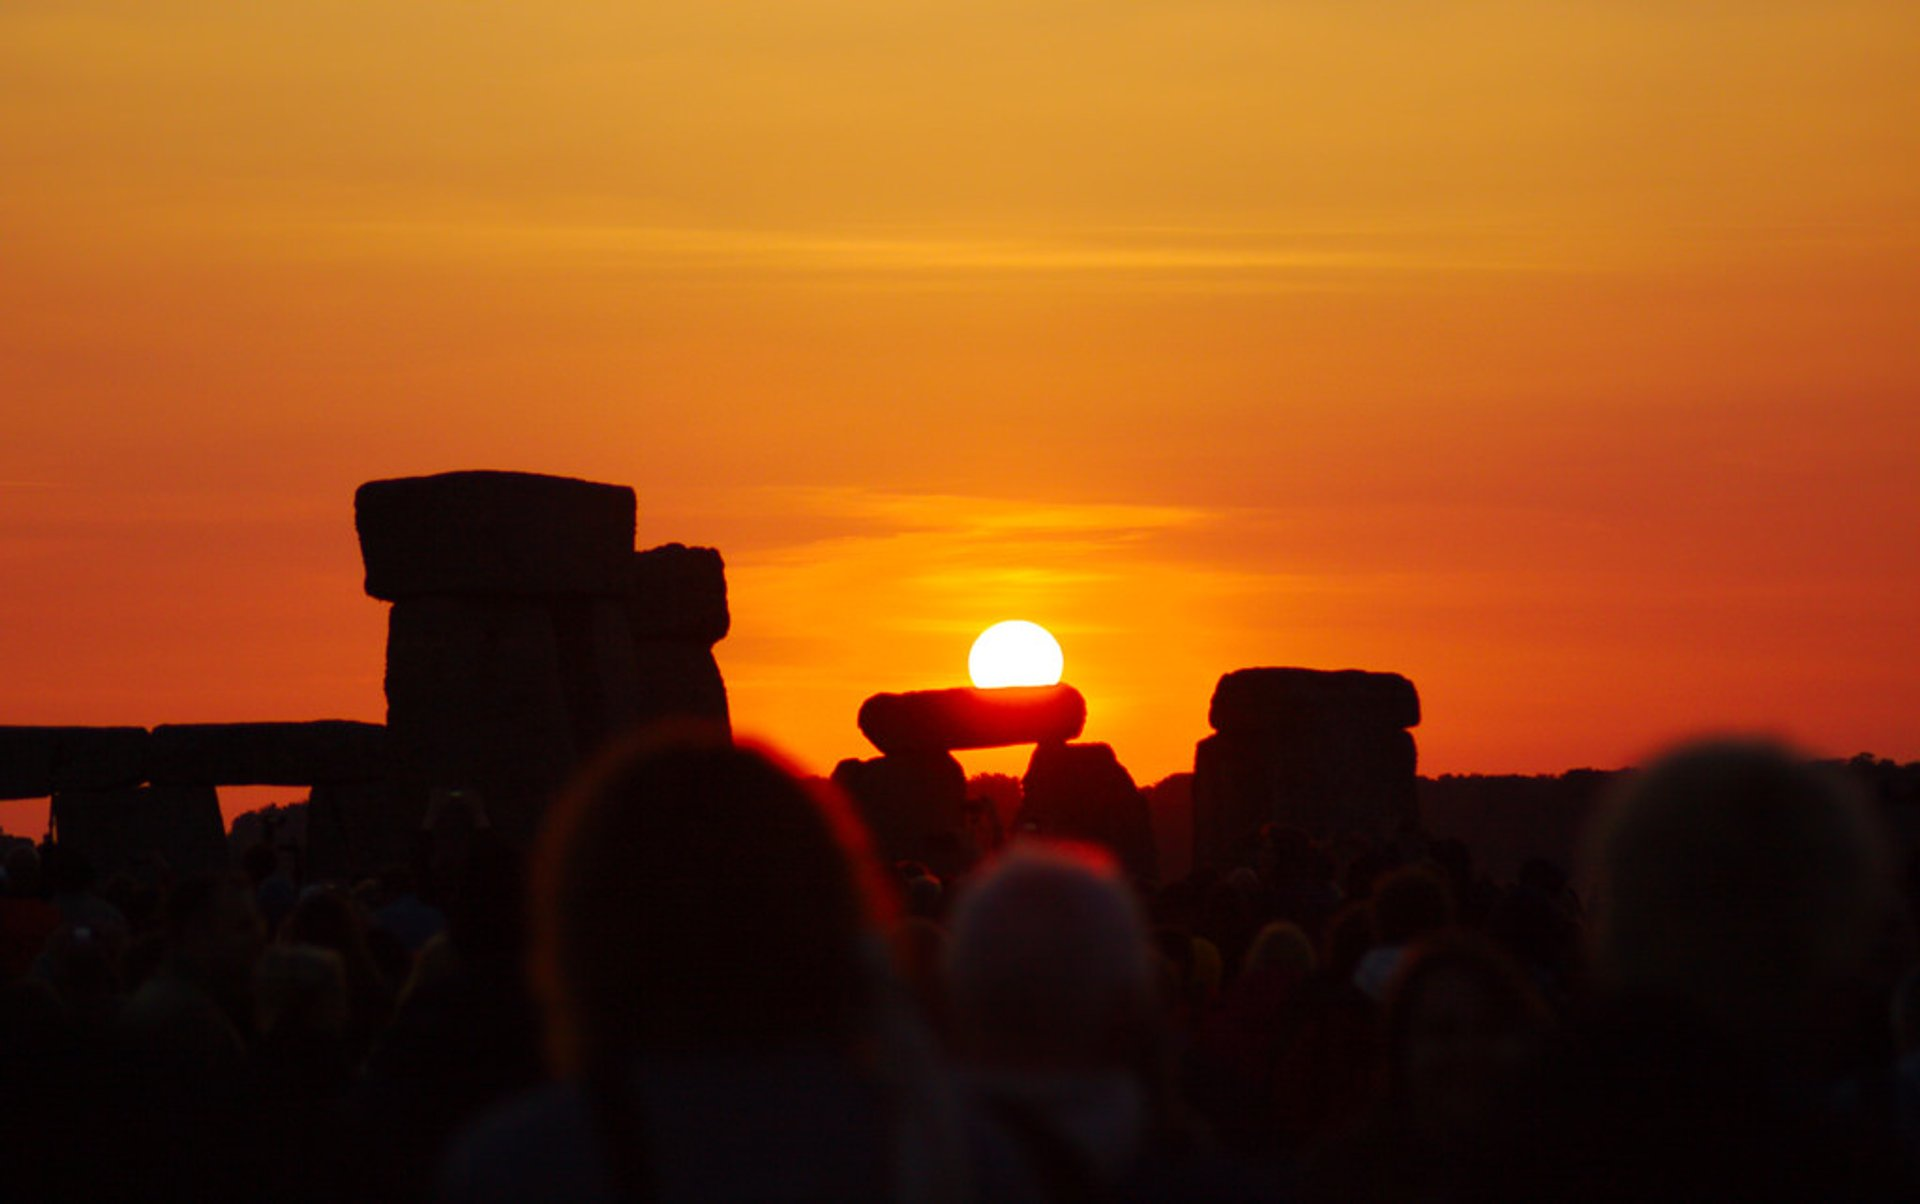 Stonehenge: Solstice and Equinox in England 2020 - Best Time